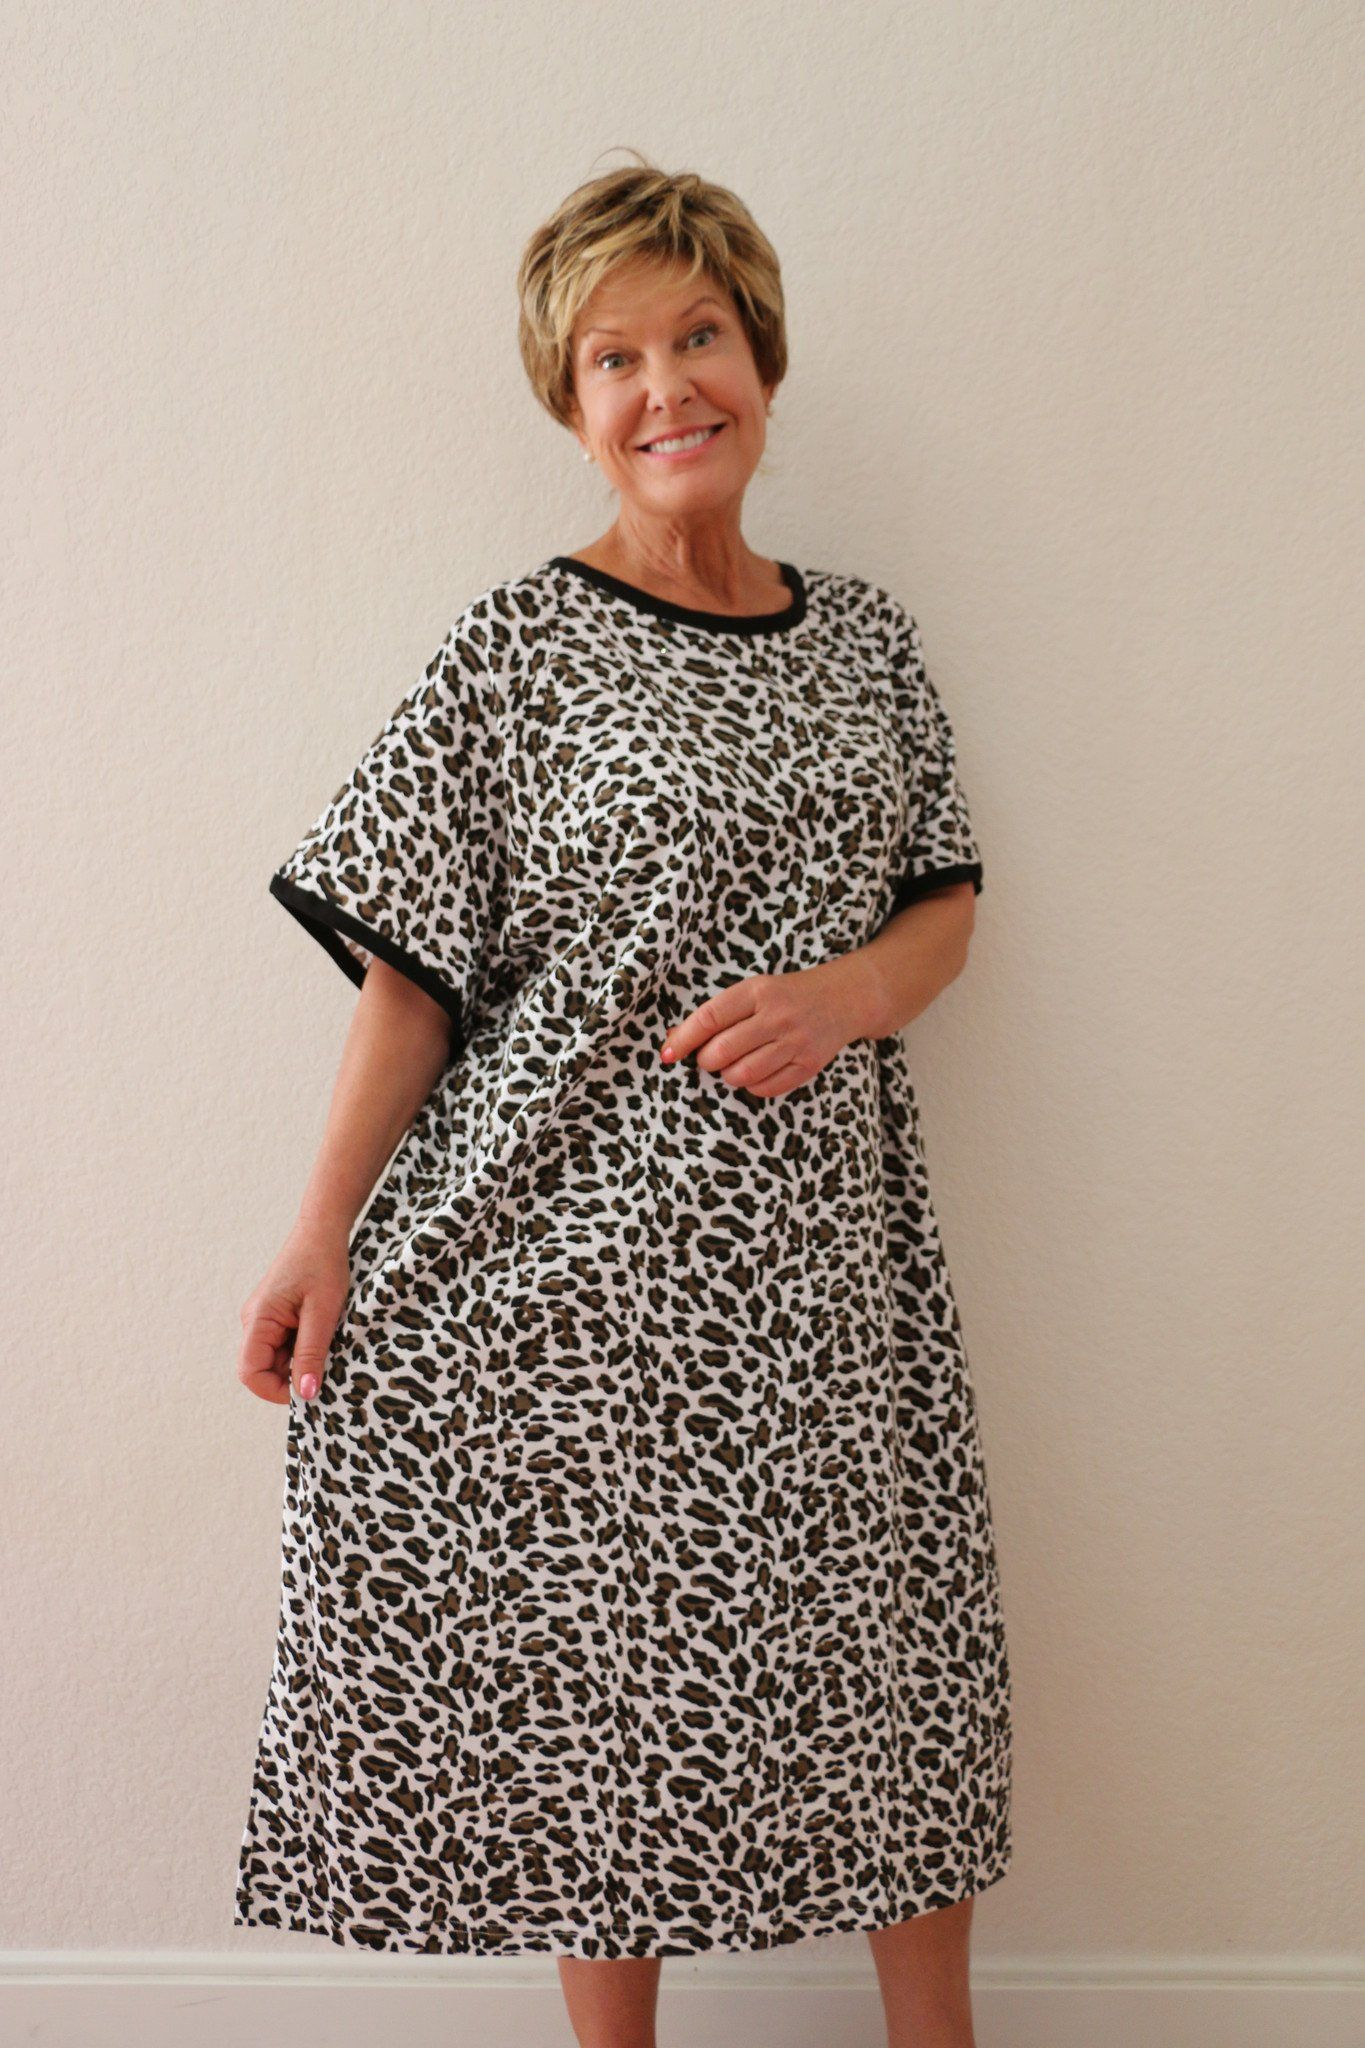 Animal Print Left Side IV Hospital Gown | Products